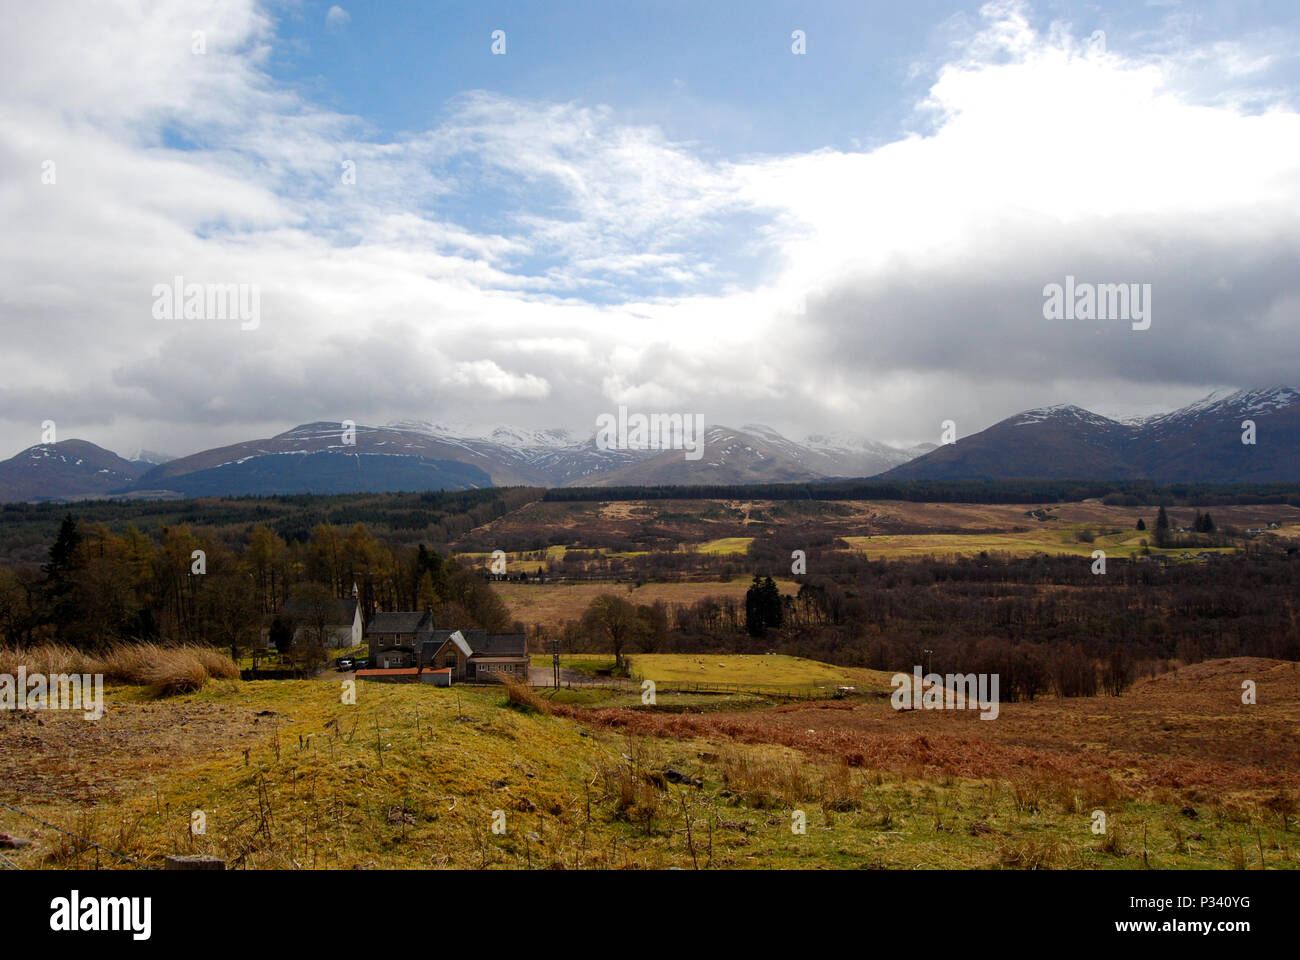 Landscape view over the Scottish Highlands out over rolling hills towards mountains with blue sky and clouds. - Stock Image